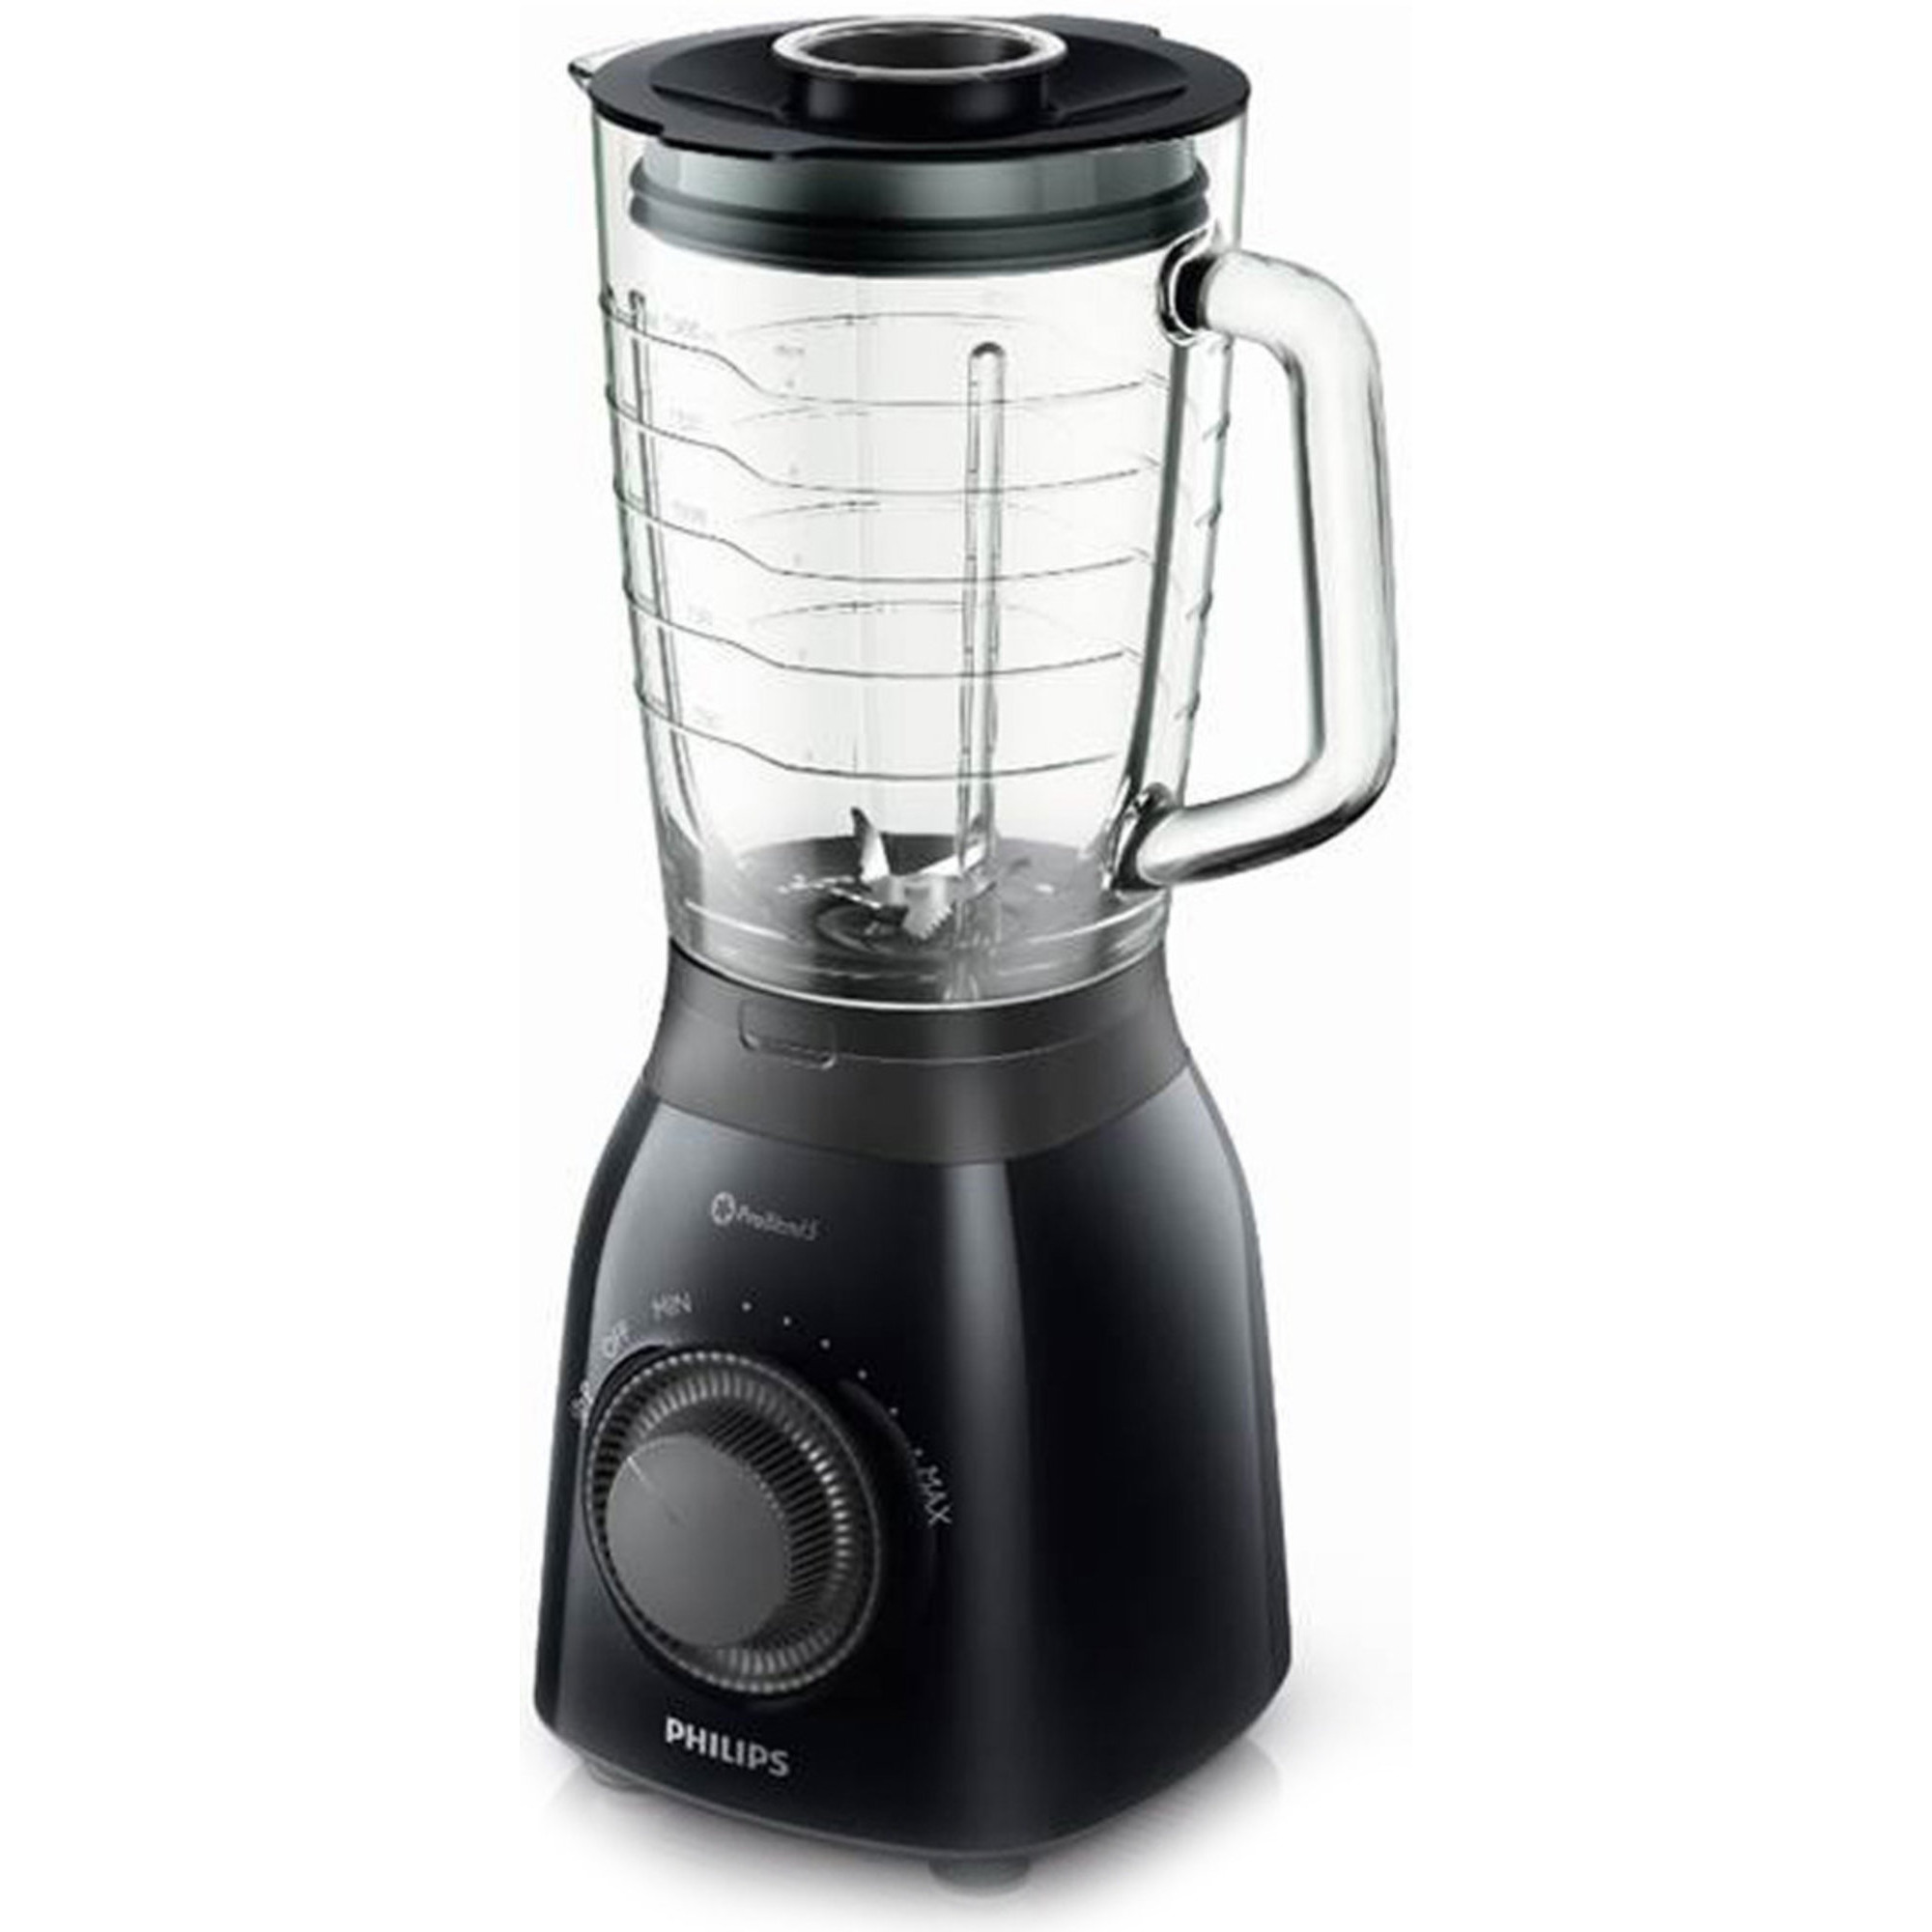 Philips HR2173/90 Blender 600 W sort